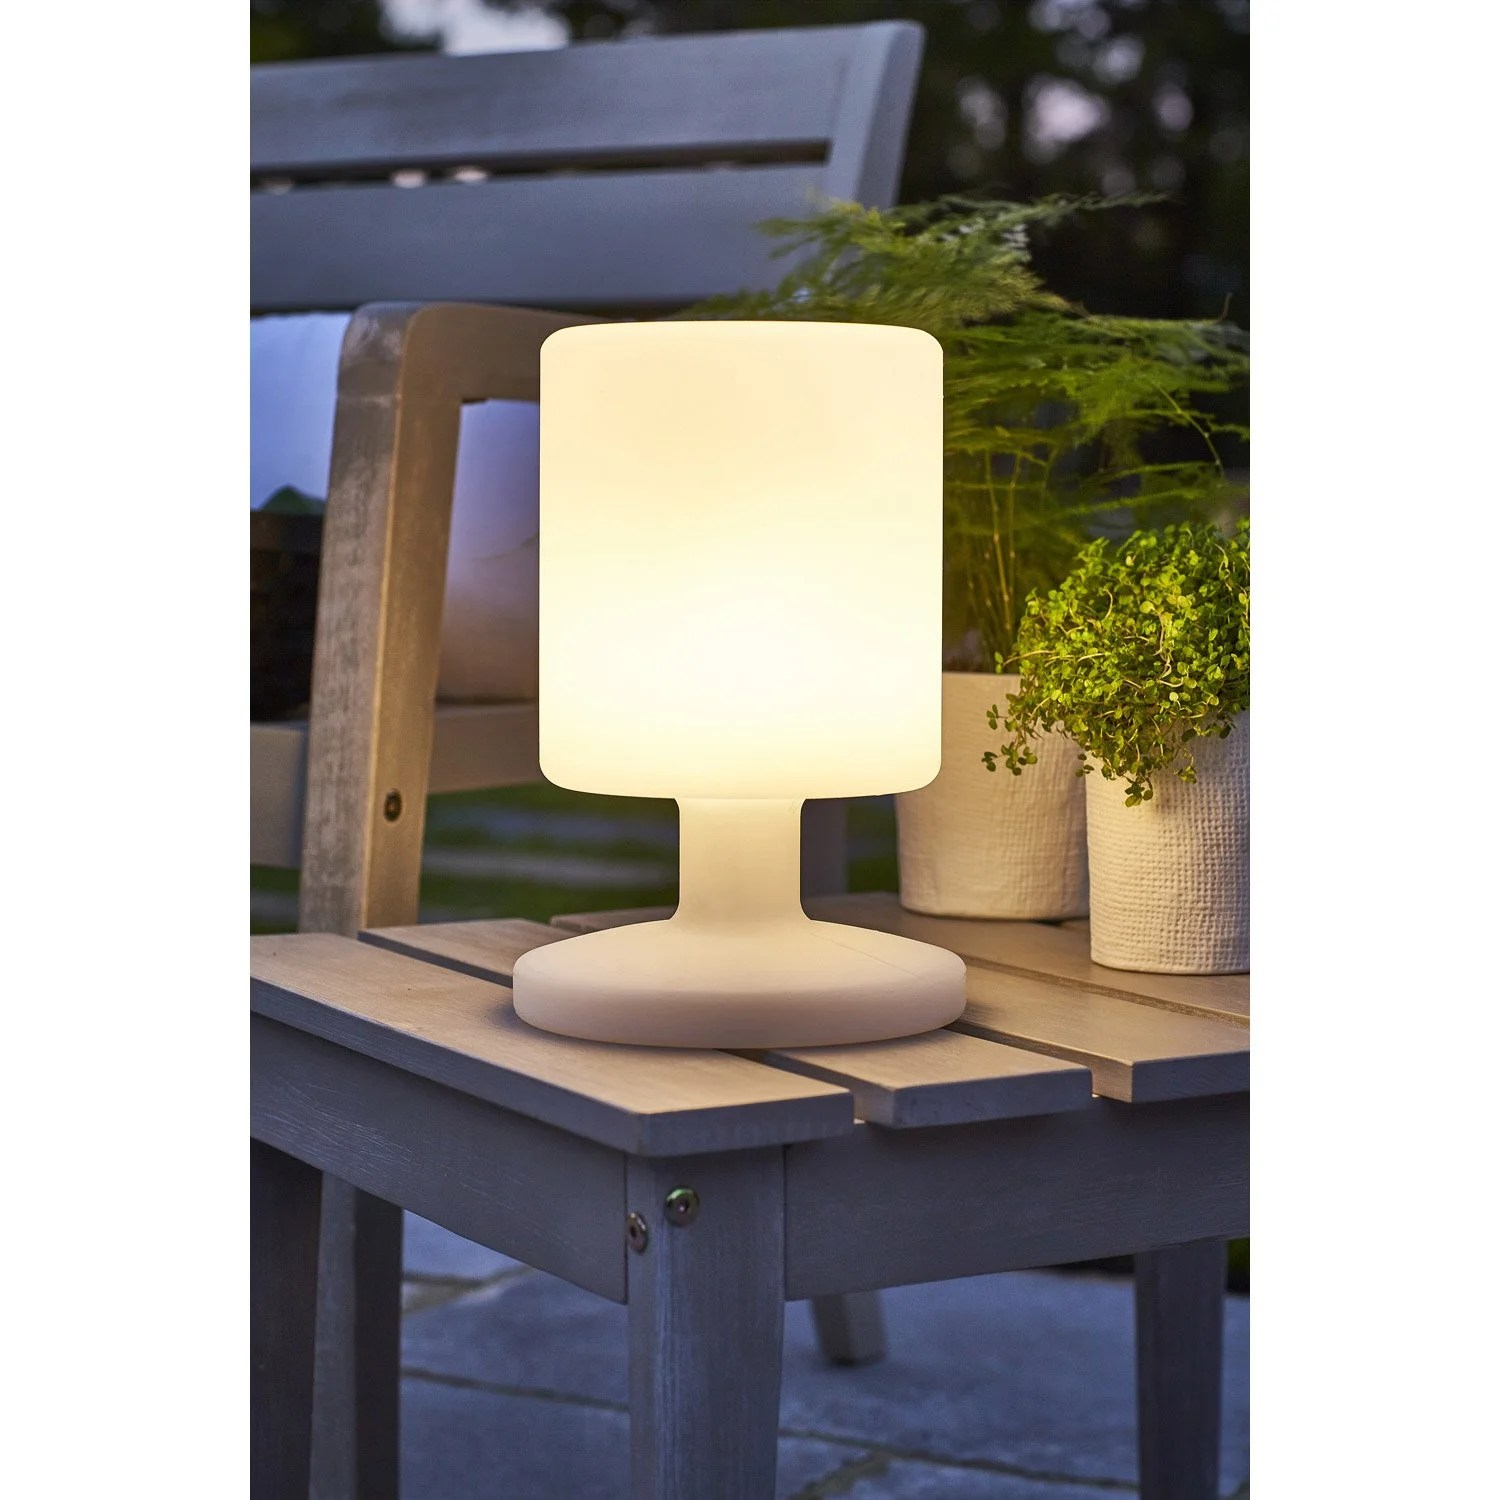 Lampe De Table Exterieur Led Lampe De Table Ext Eacuterieure Led Int Eacutegr Eacutee 2w